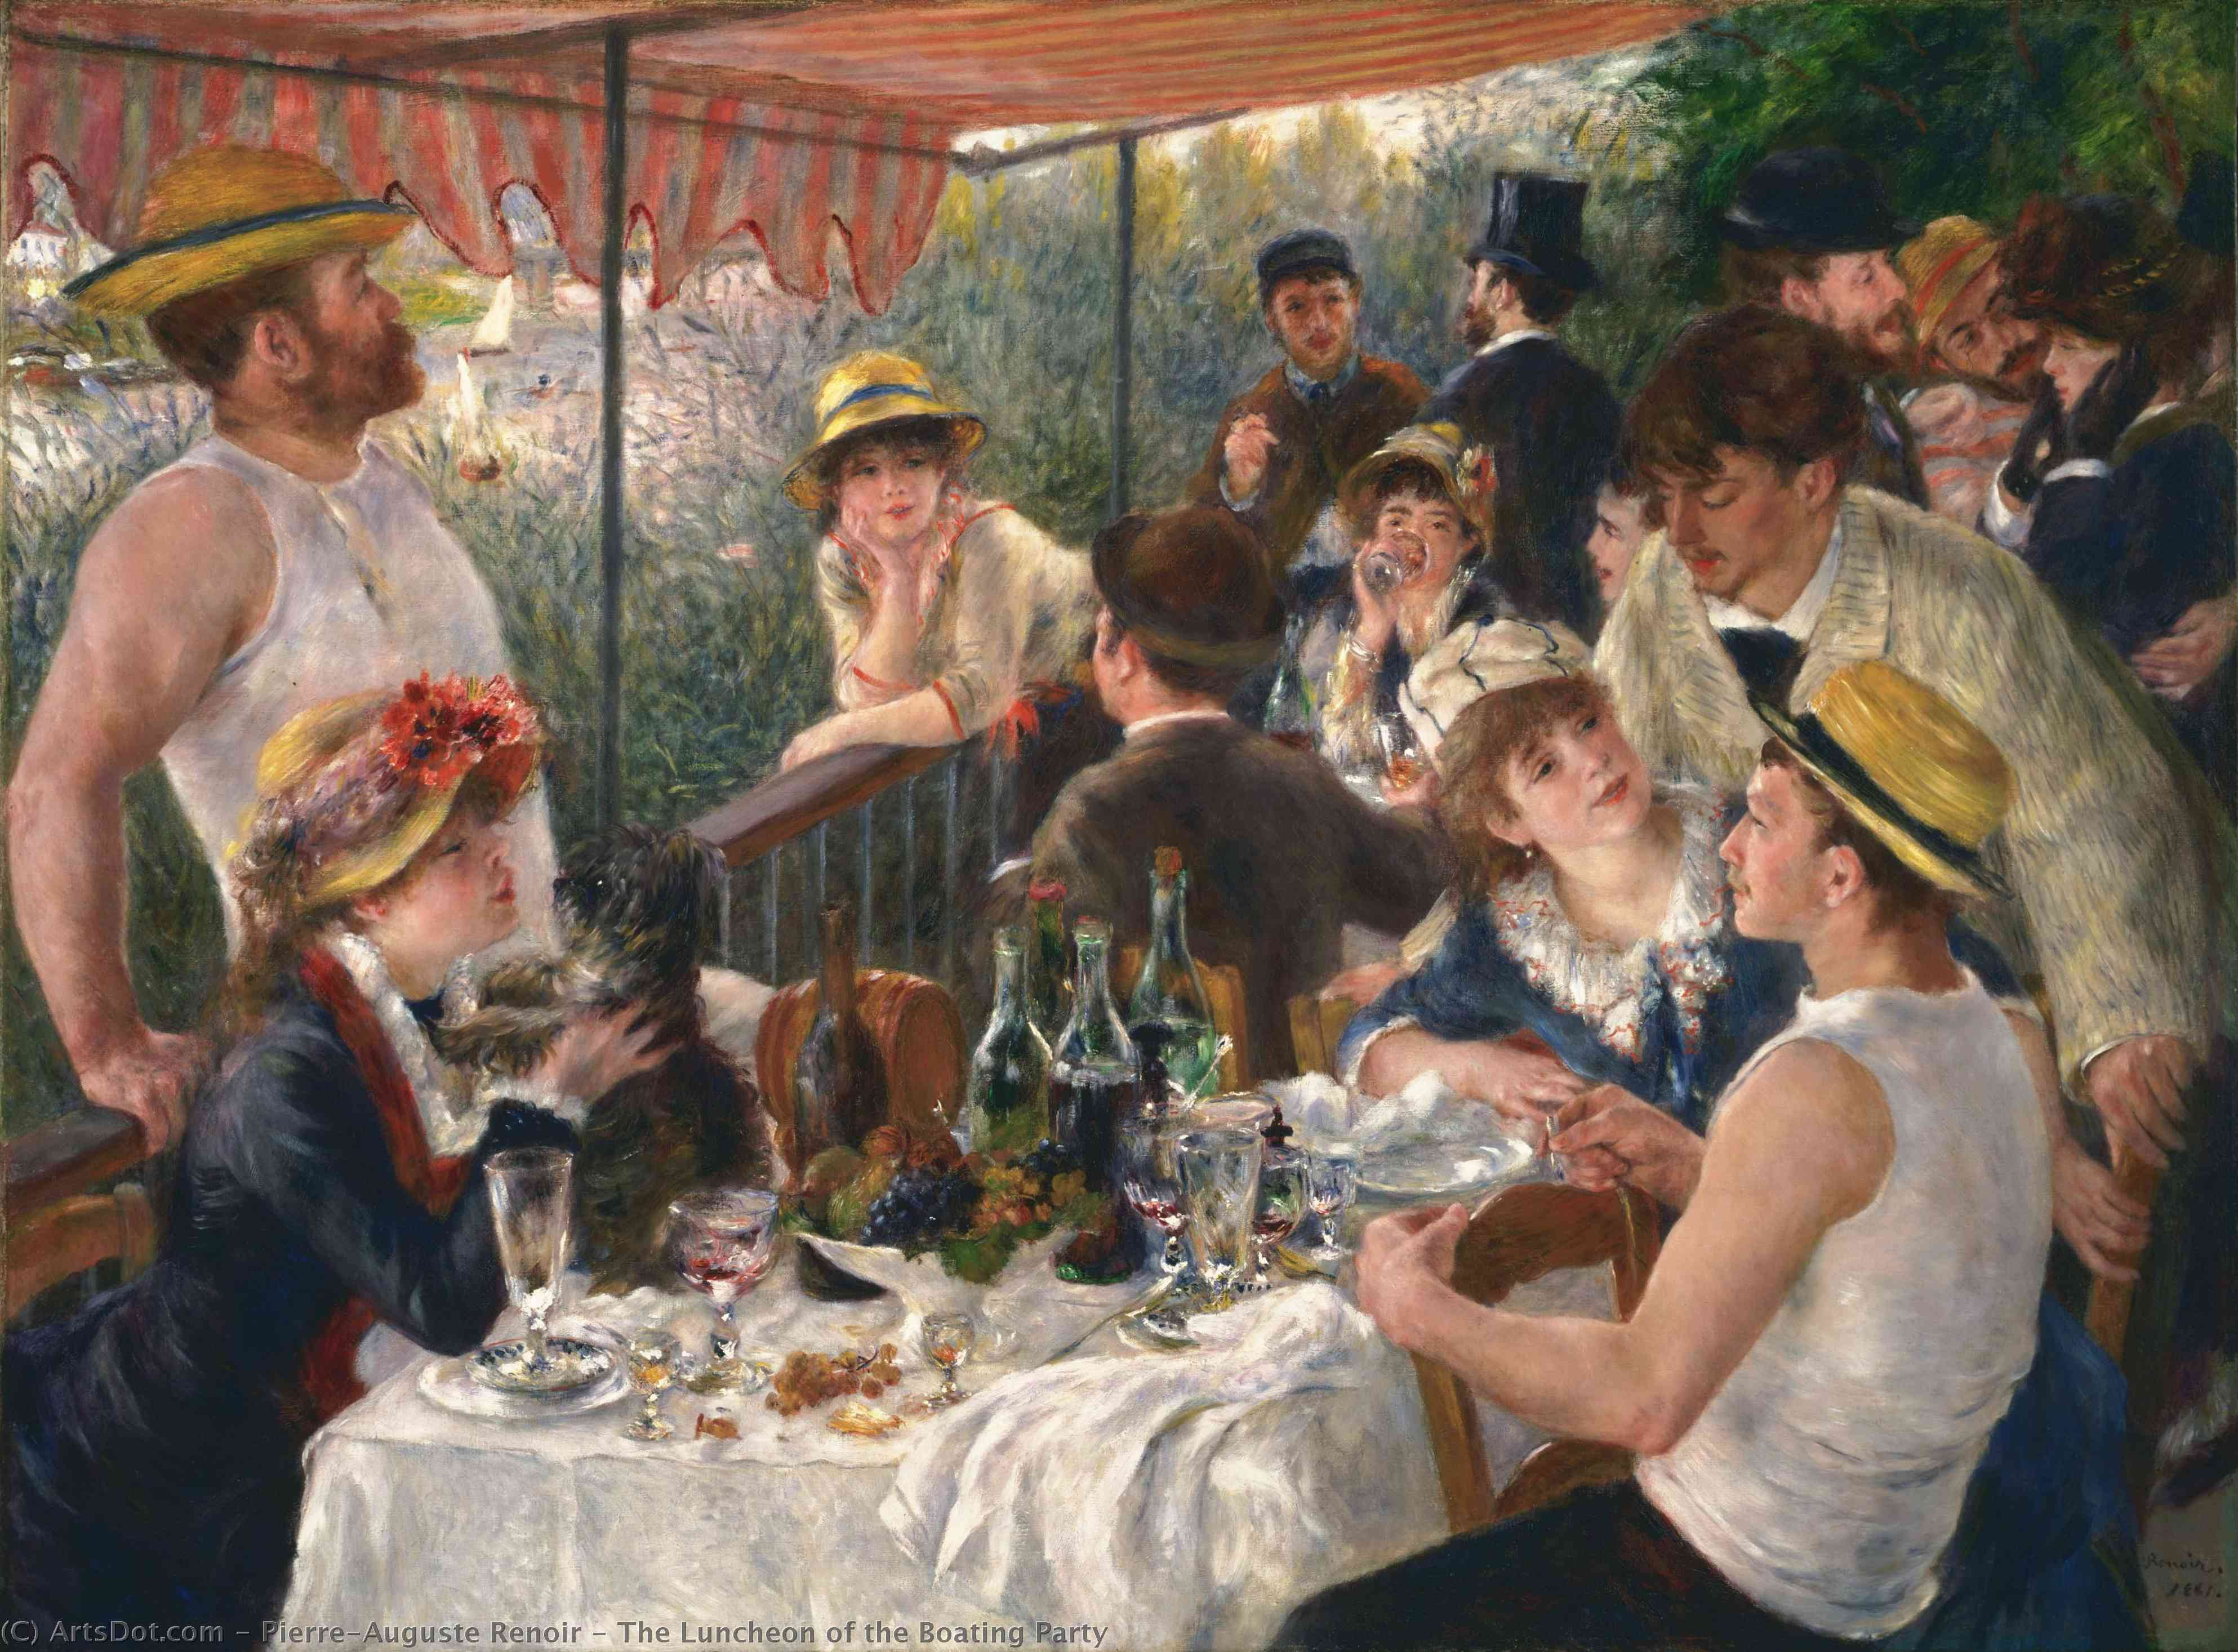 Wikioo.org - The Encyclopedia of Fine Arts - Painting, Artwork by Pierre-Auguste Renoir - The Luncheon of the Boating Party